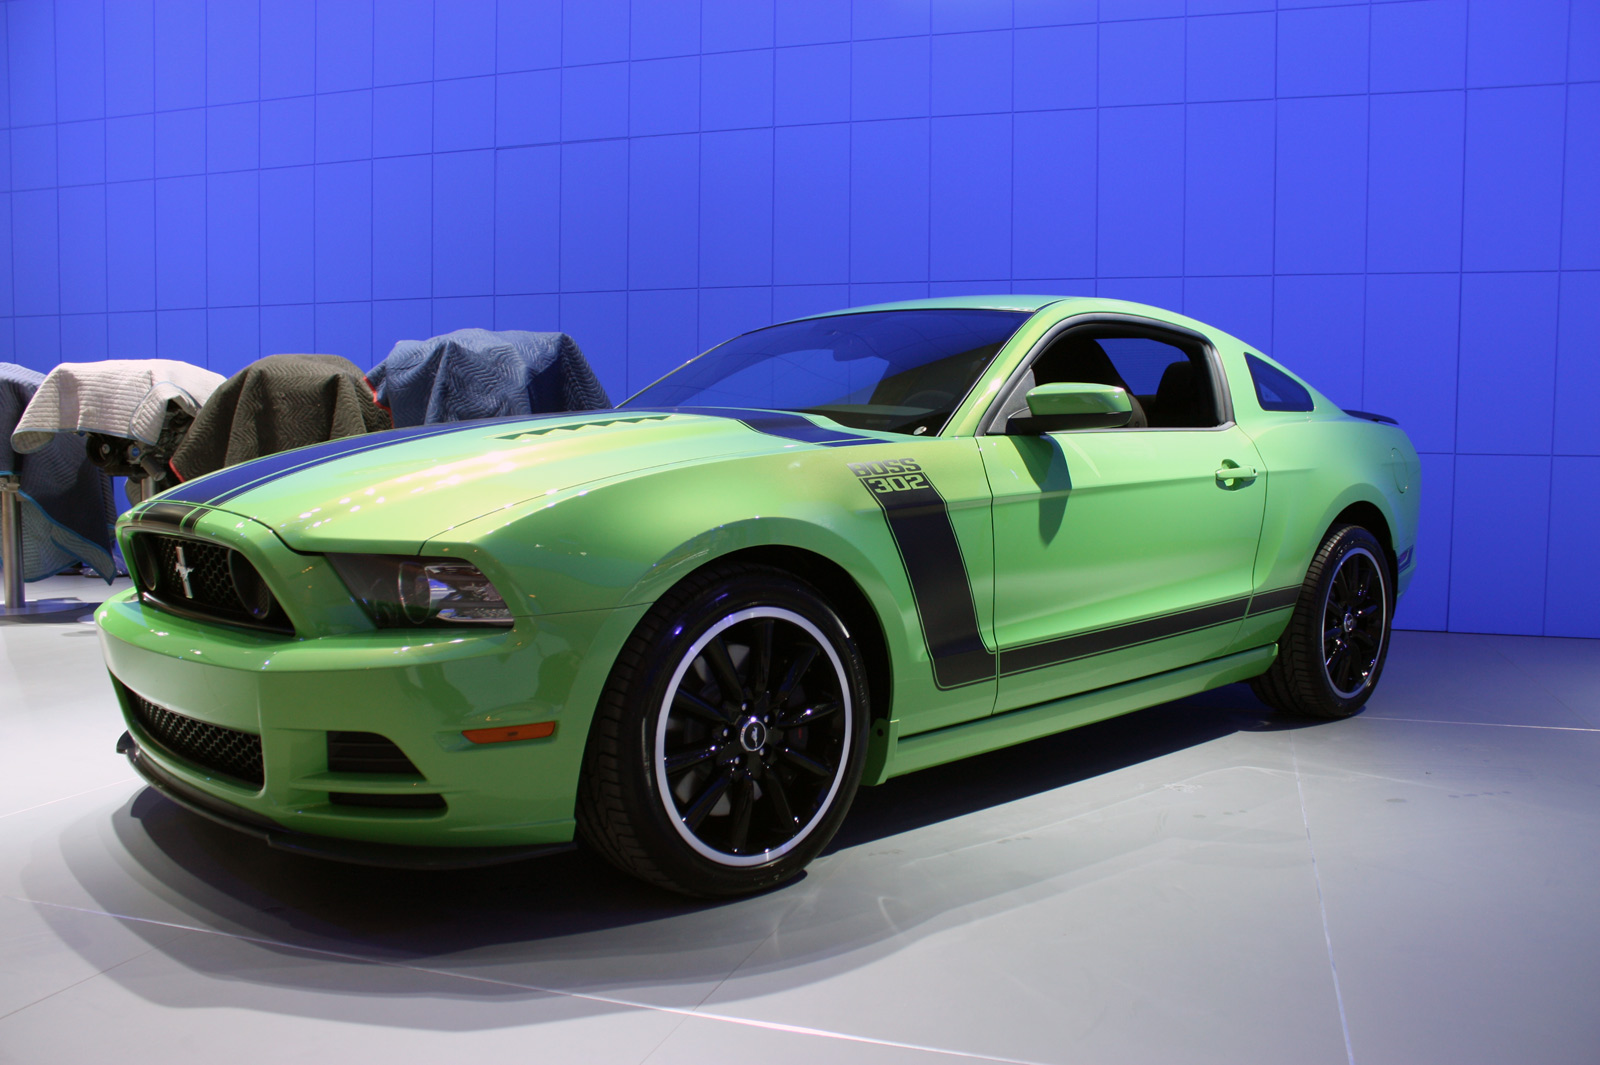 2013 ford mustang boss 302 gotta have it green photo gallery autoblog. Black Bedroom Furniture Sets. Home Design Ideas